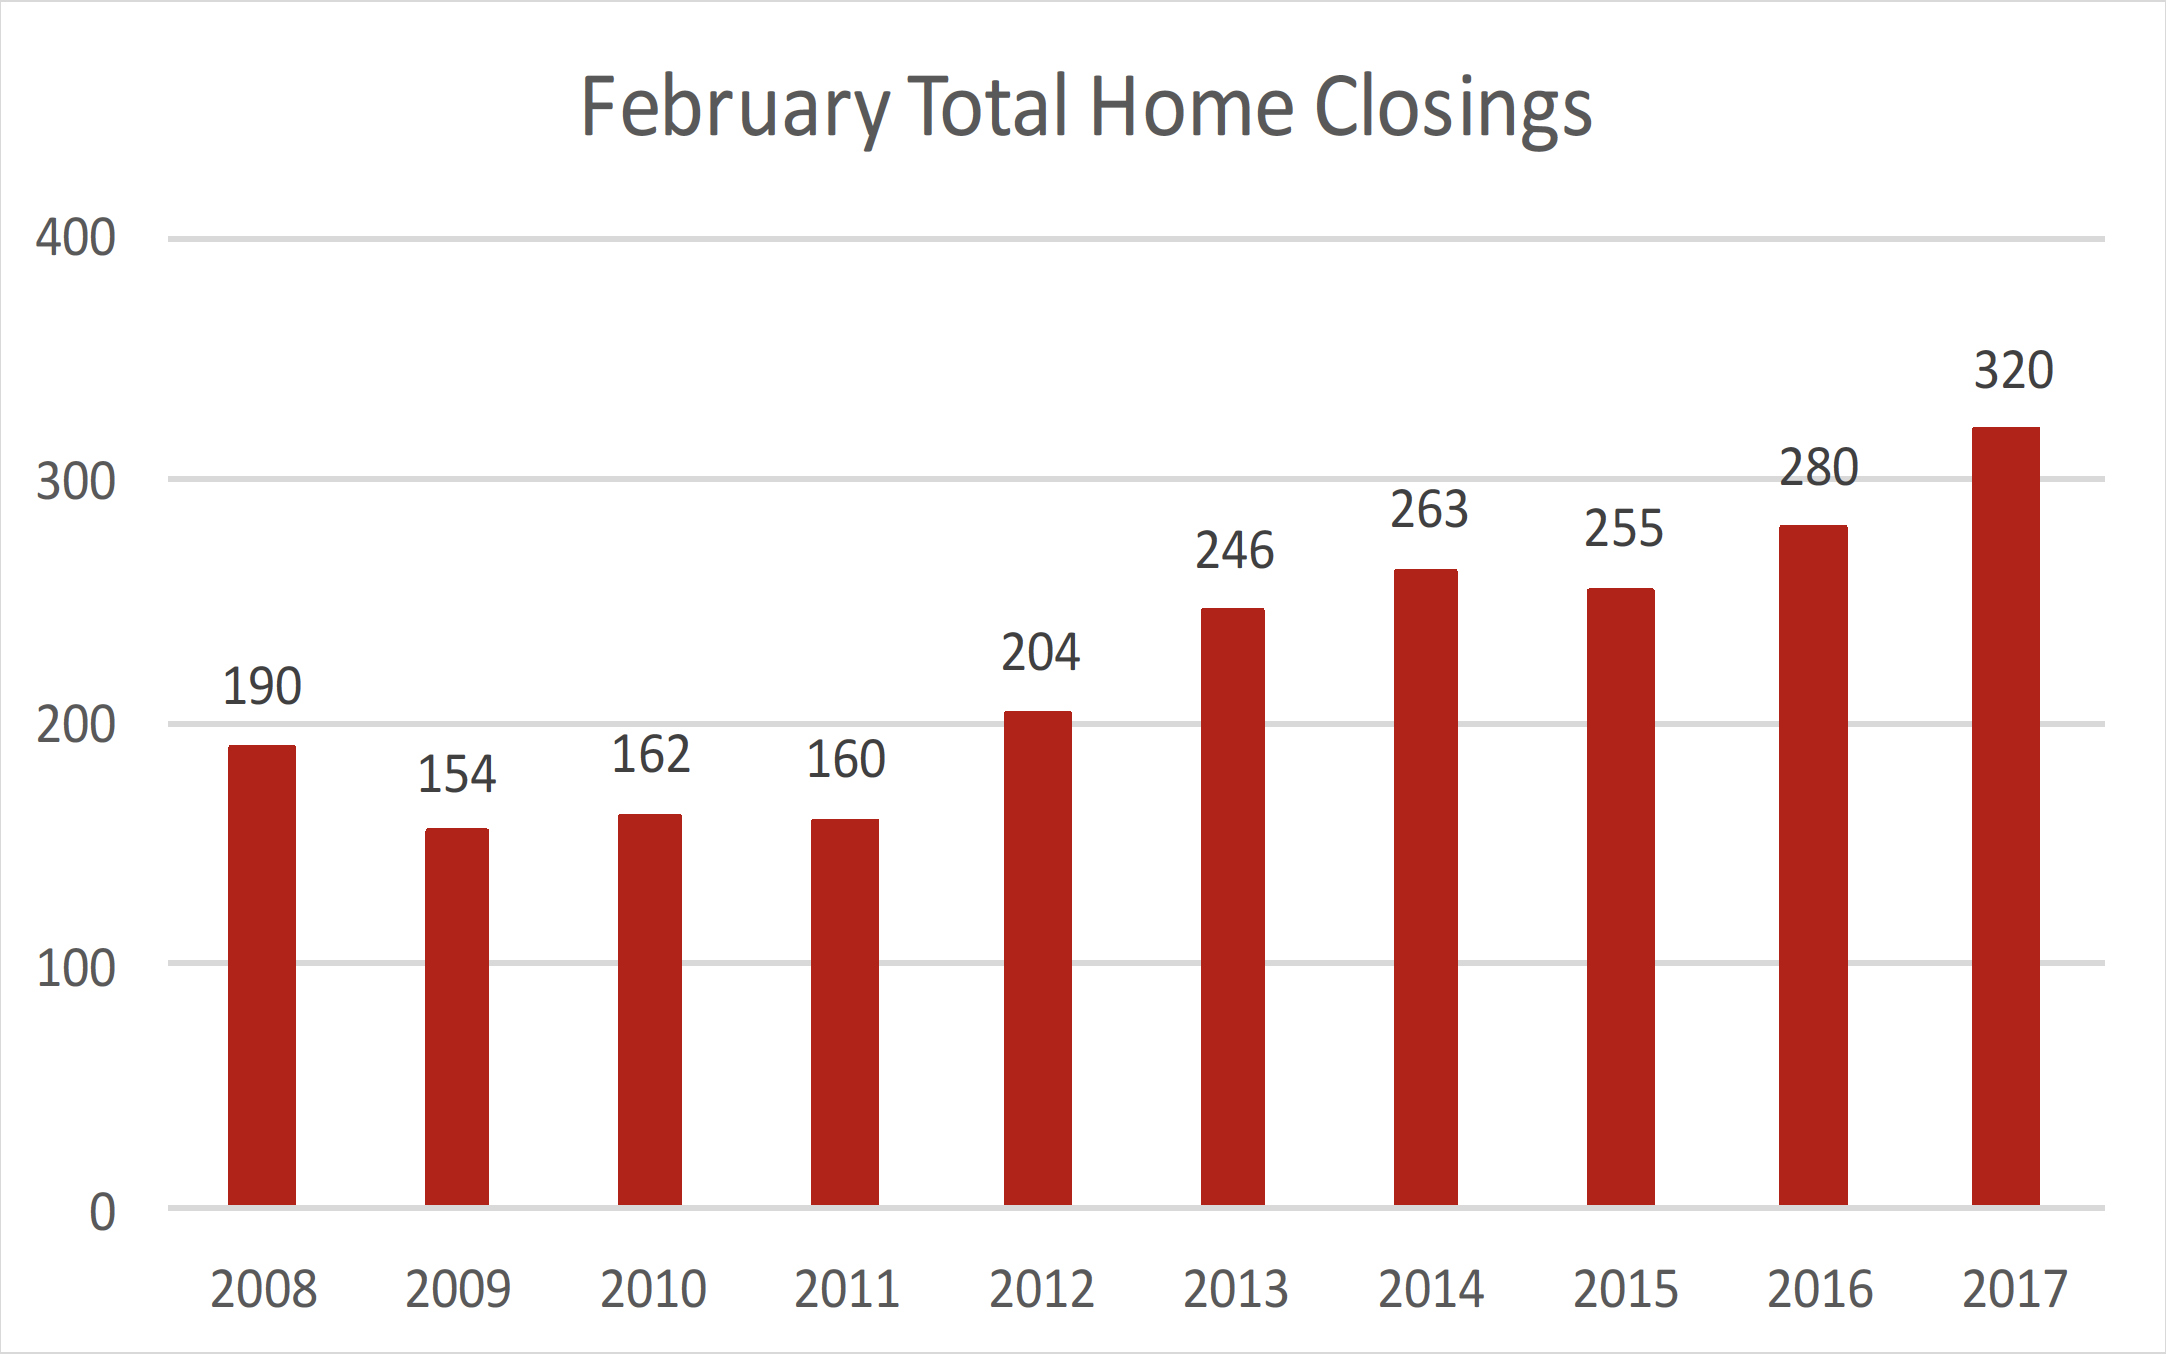 February Historical Total Home Closings in Williamson County